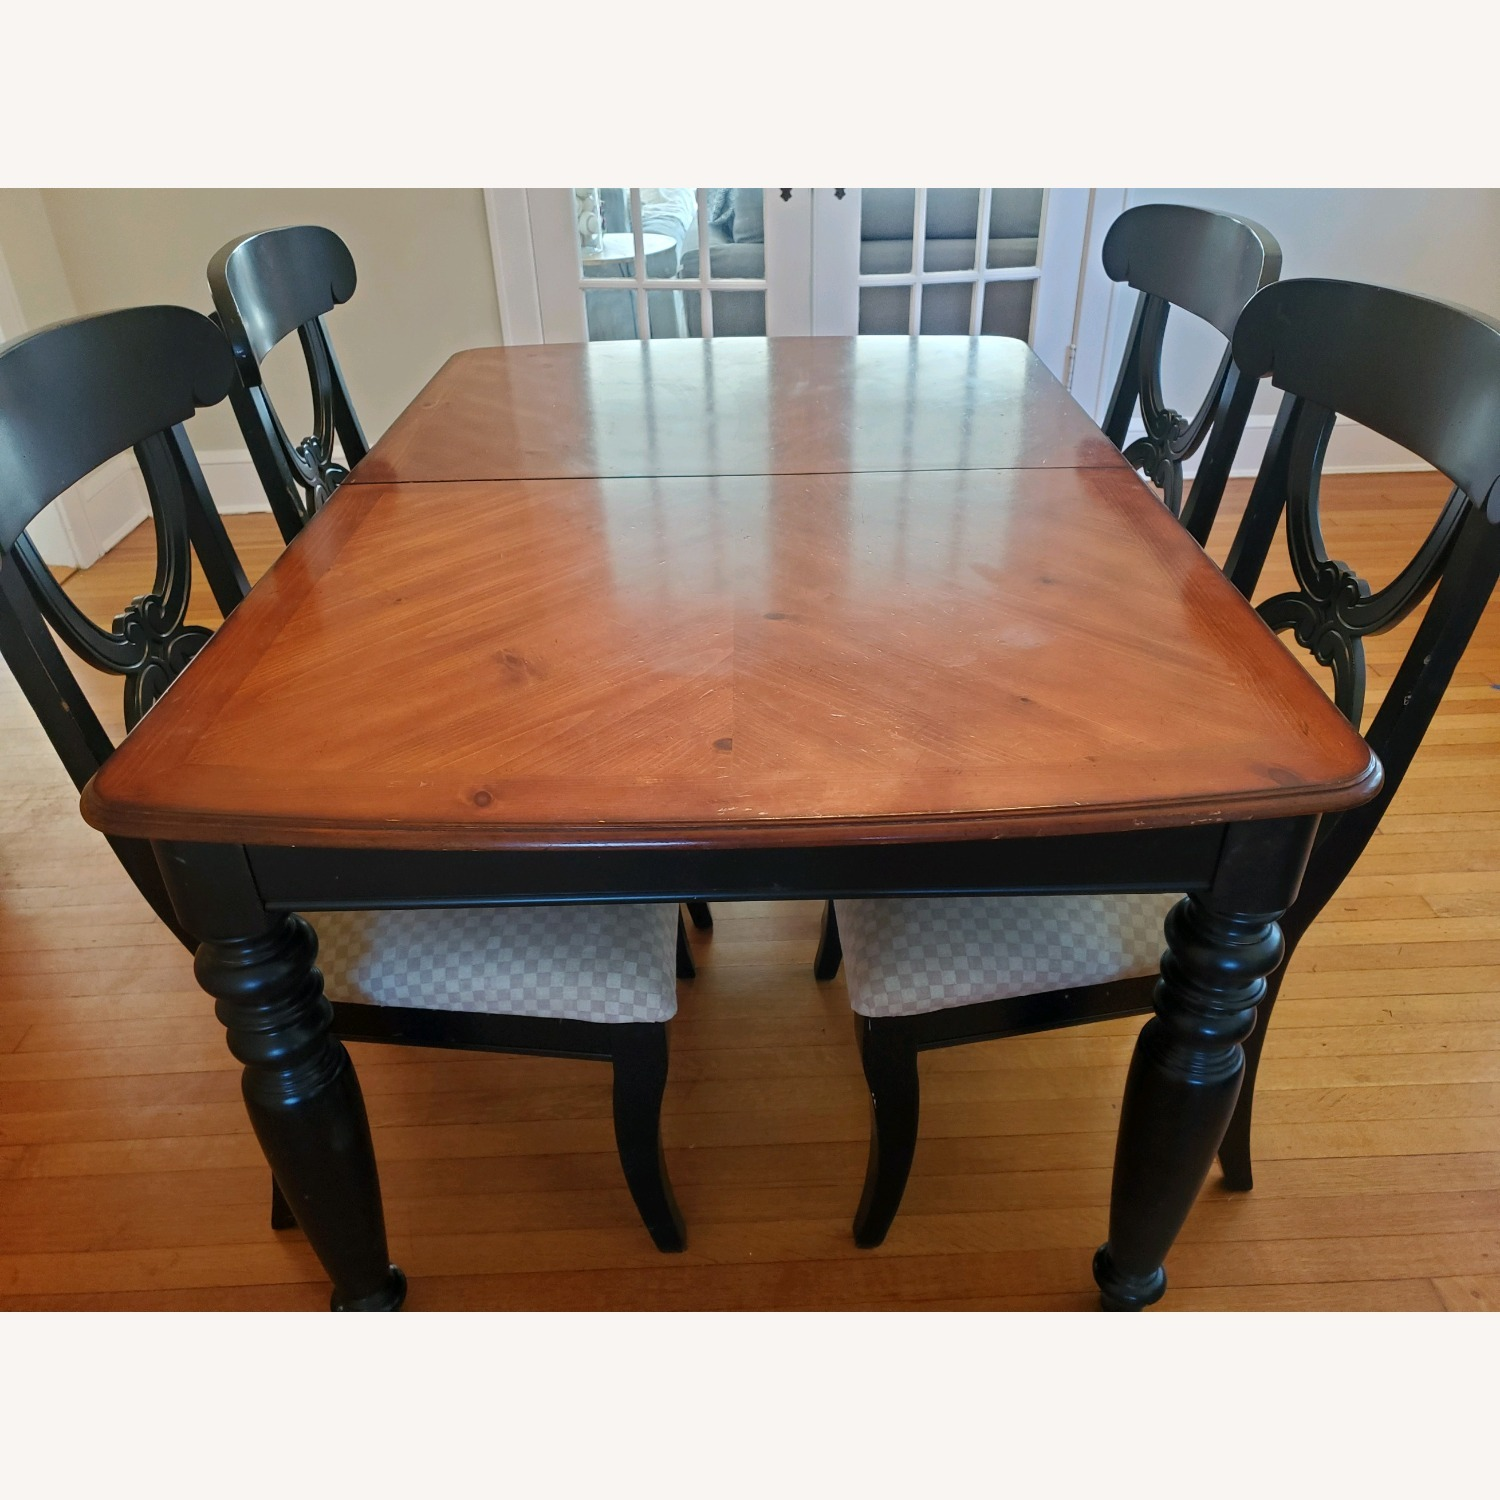 5 pc Country Style Wood Dining Room Set - image-5